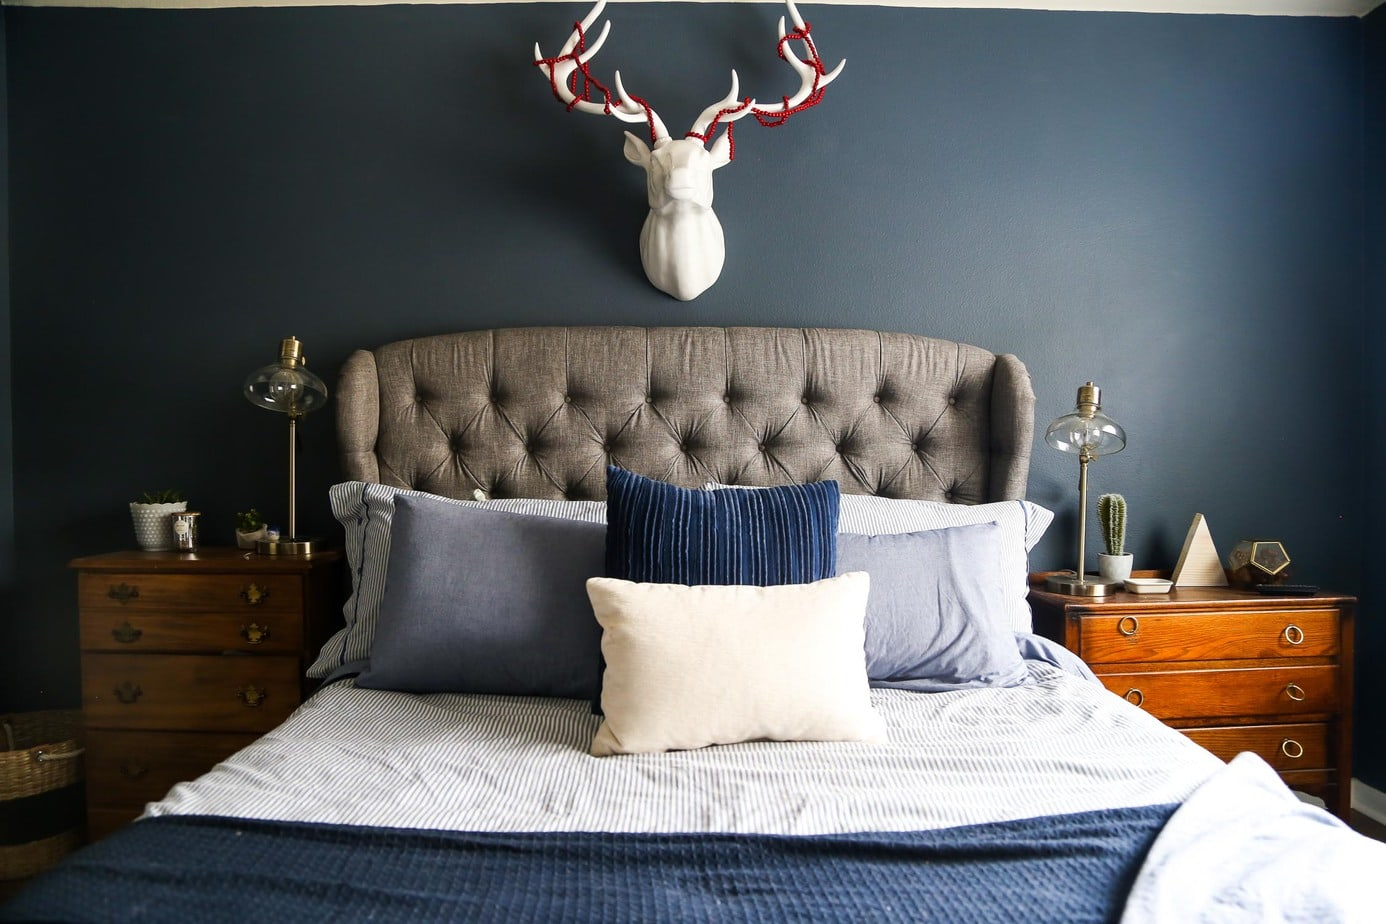 A cozy, moody, and beautiful master bedroom, along with an Eve Mattress review - all of the details on if you should get this mattress for your home.